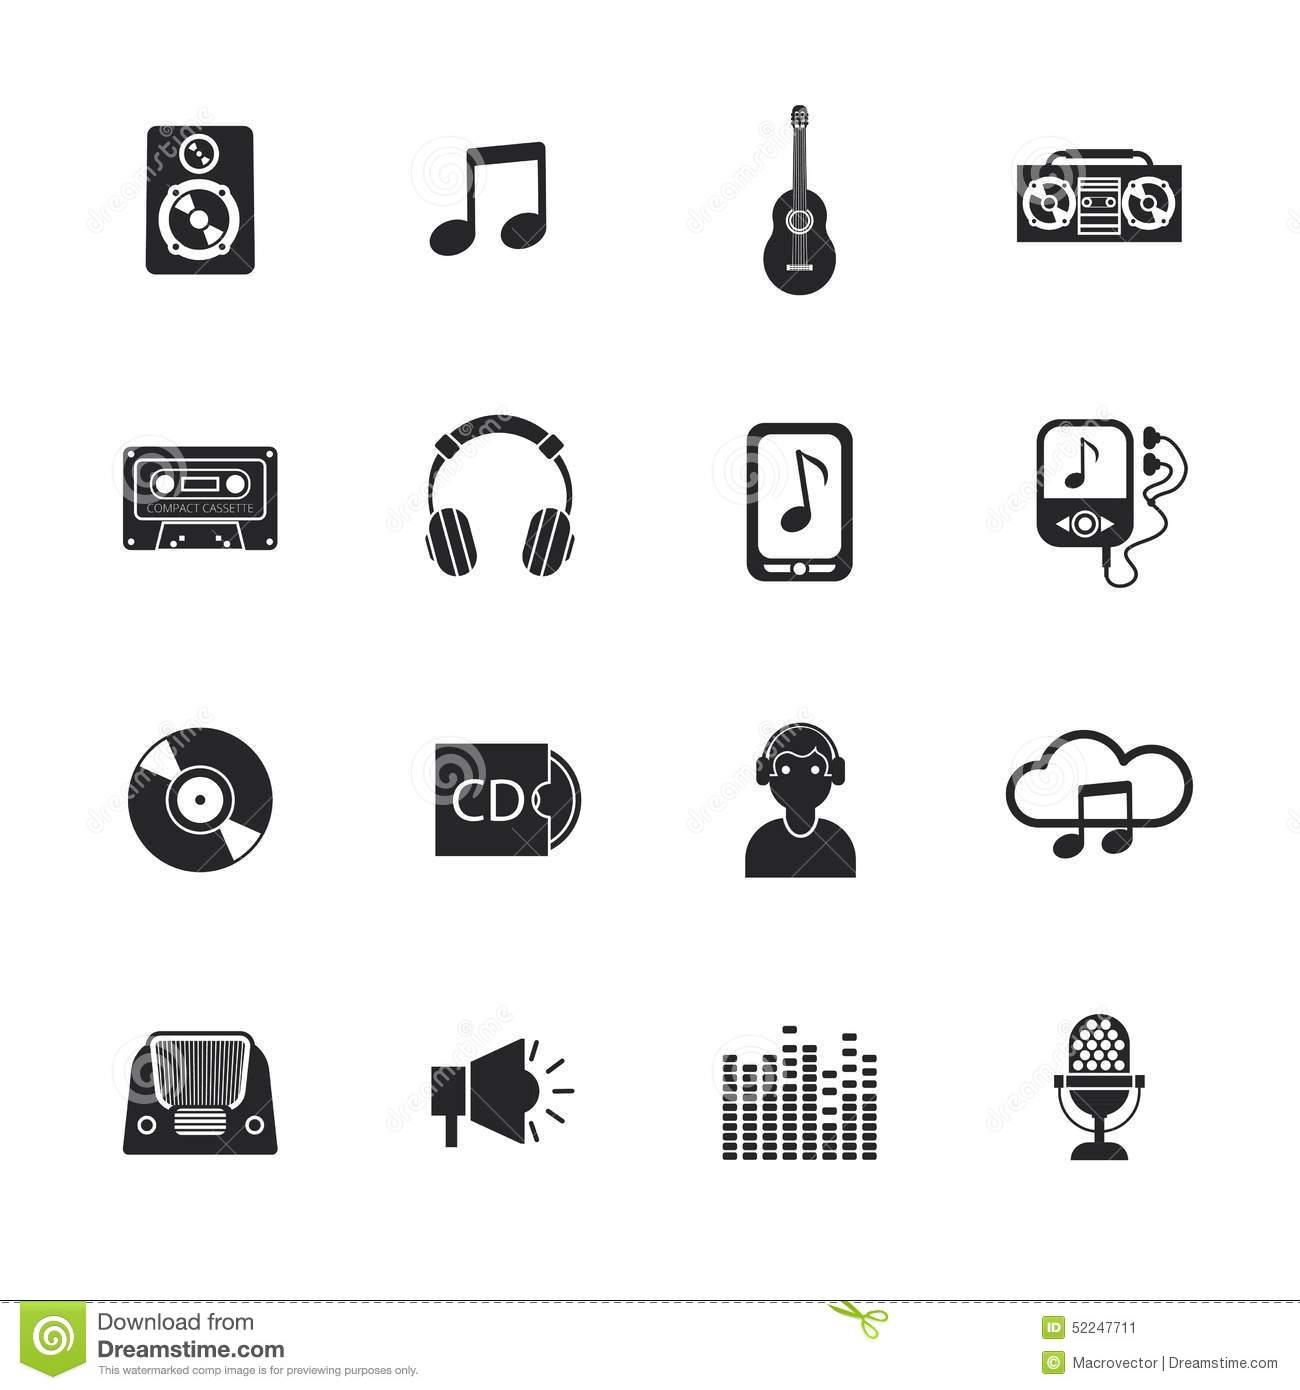 Image Result For Royalty Free Music Audio Network